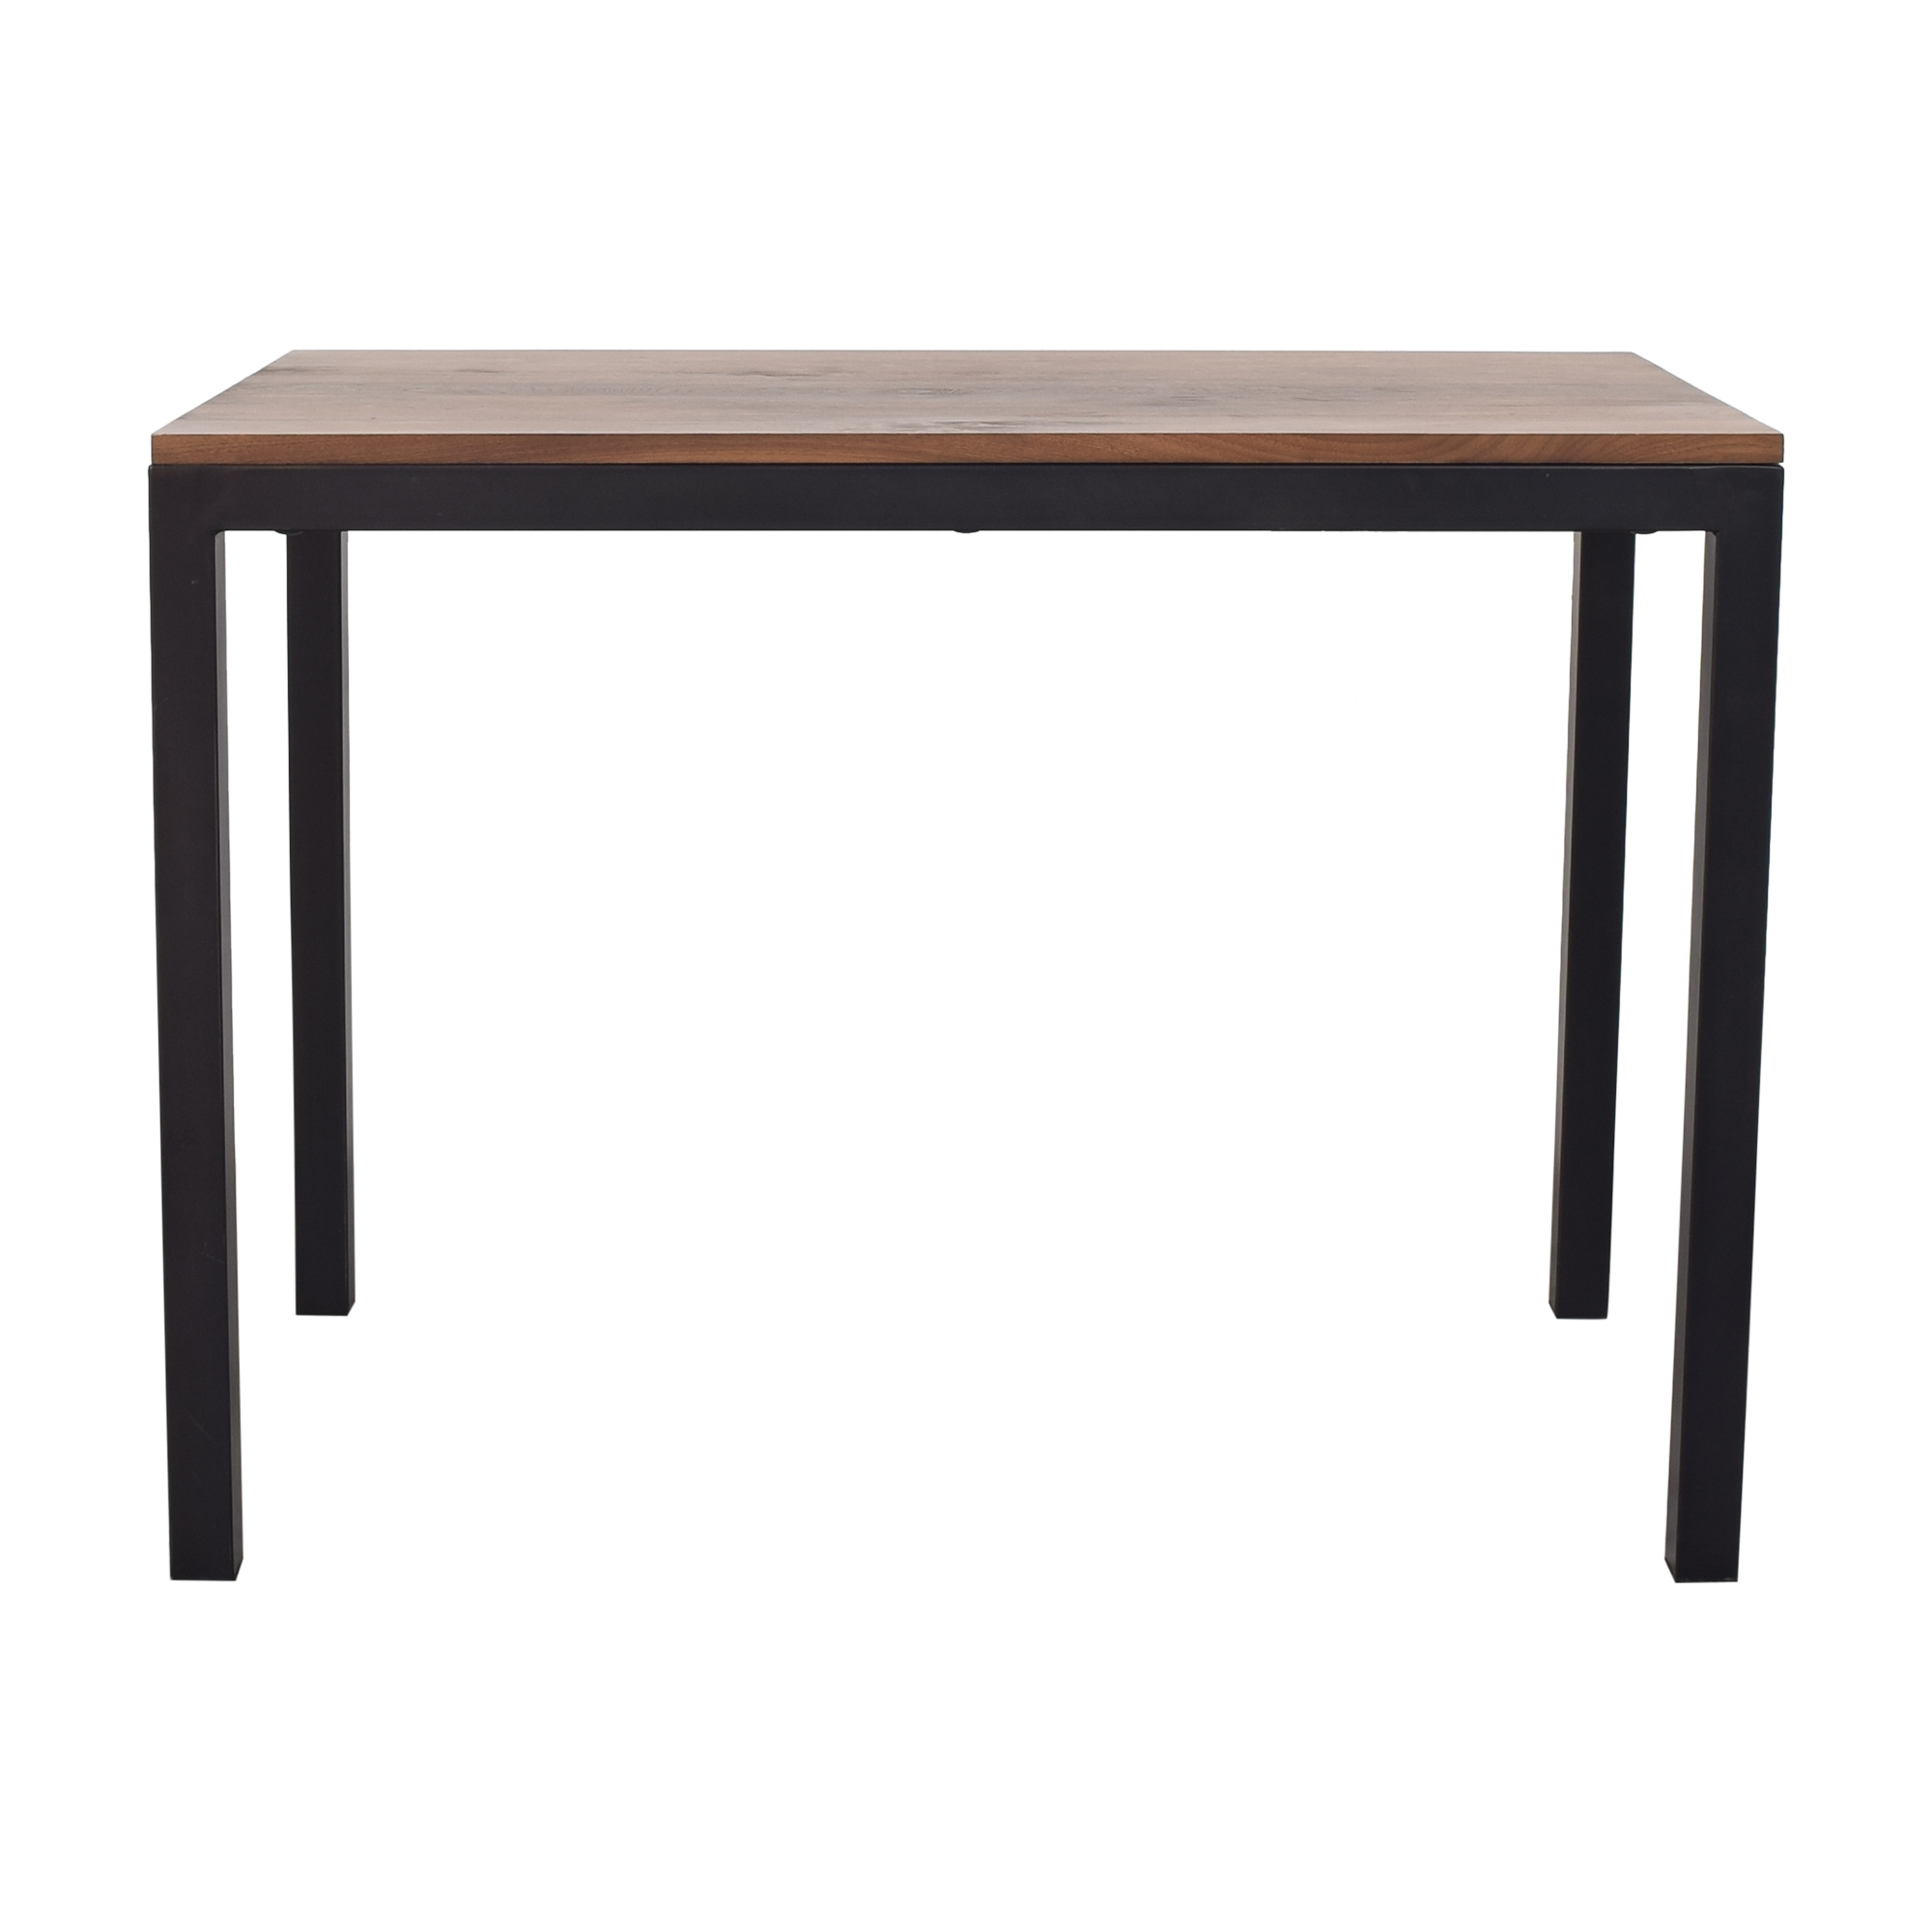 Crate & Barrel Crate & Barrel Custom Parsons Table second hand